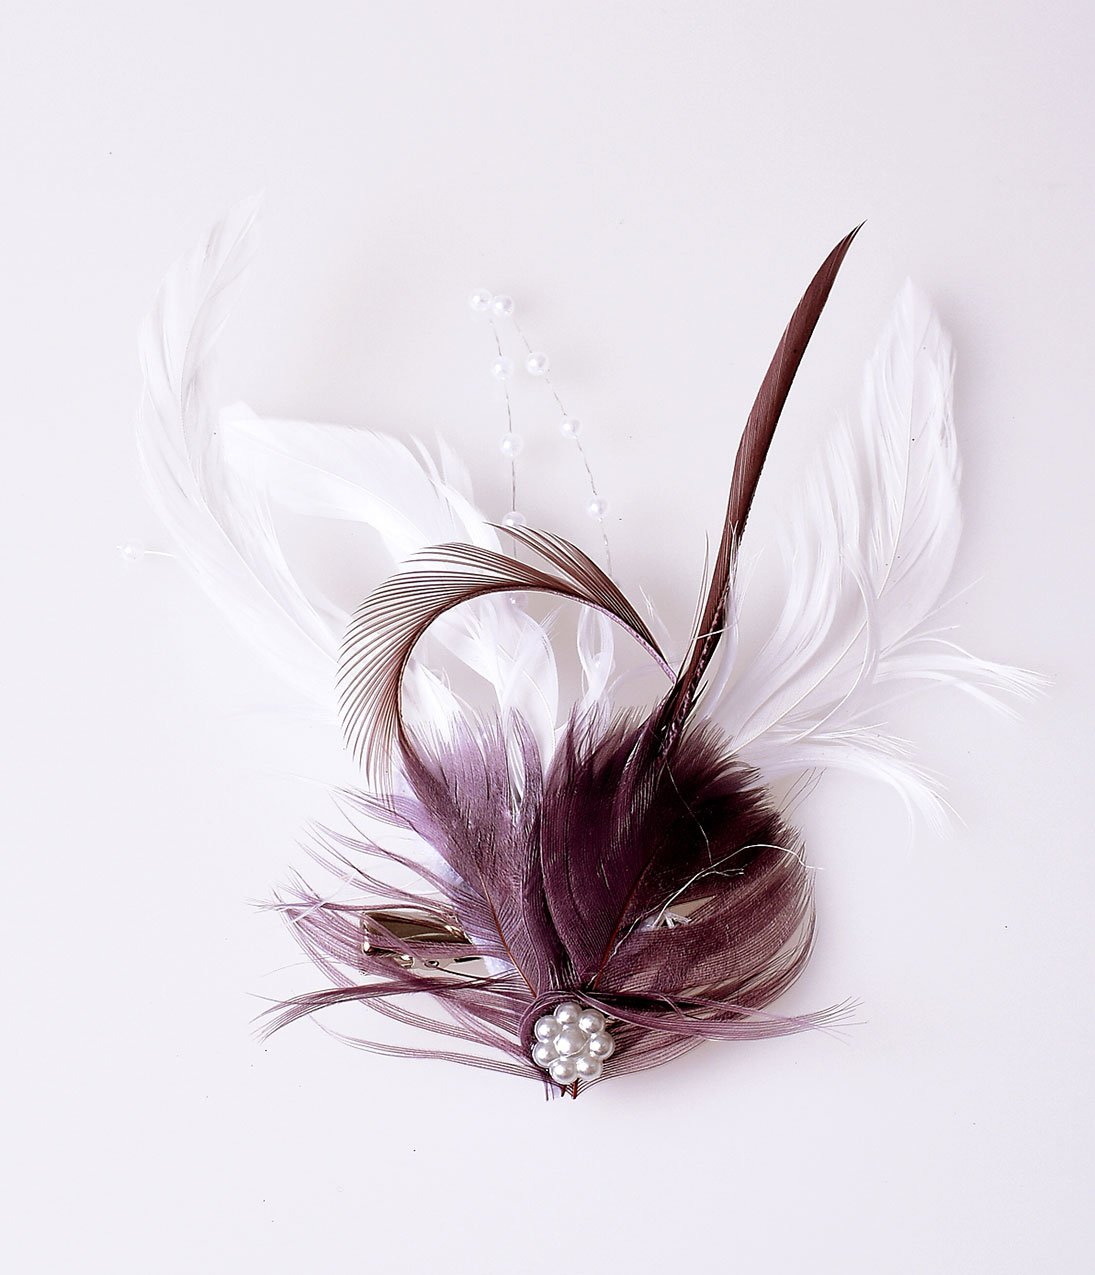 Vintage_Style_White_Plum_Purple_Coquille_Feather_Hair_Clip_3_2048x2048.jpg